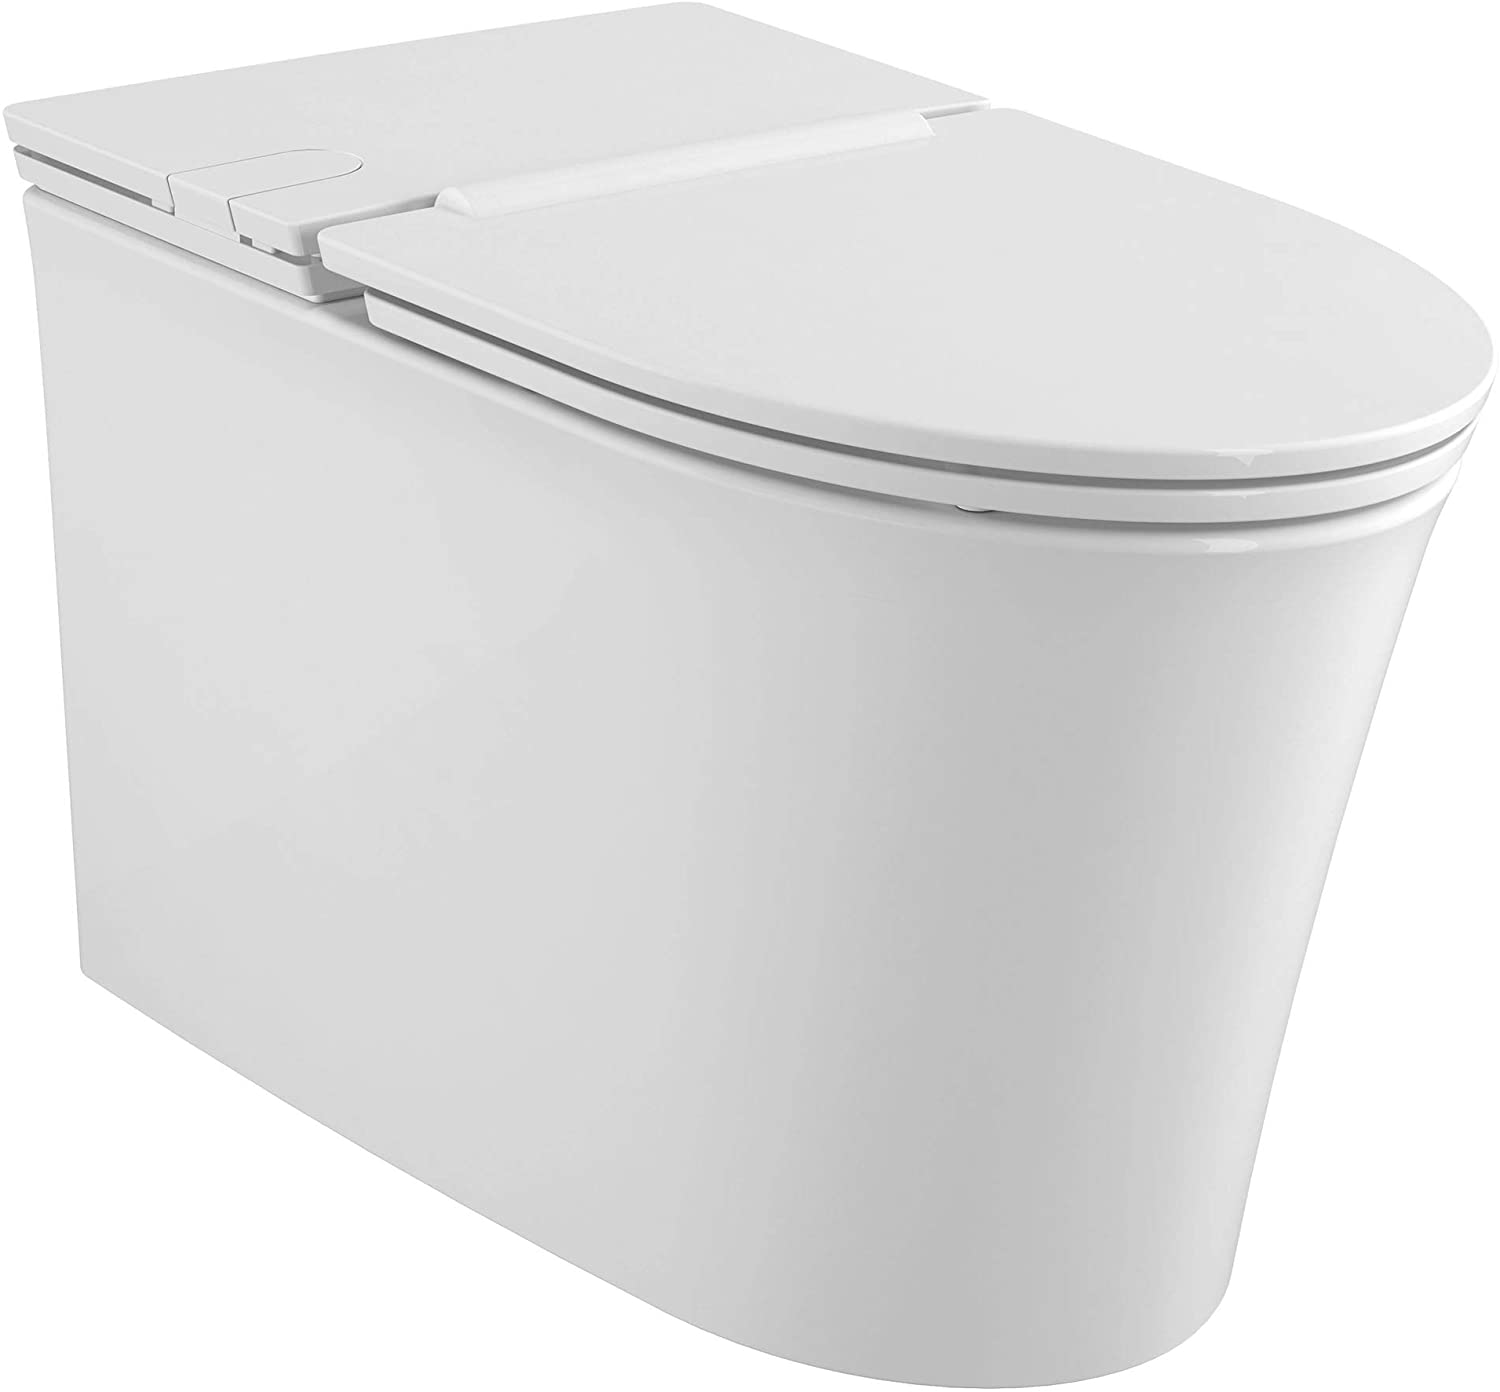 American Standard Studio S Right Height Elongated Low-Profile Toilet with Seat